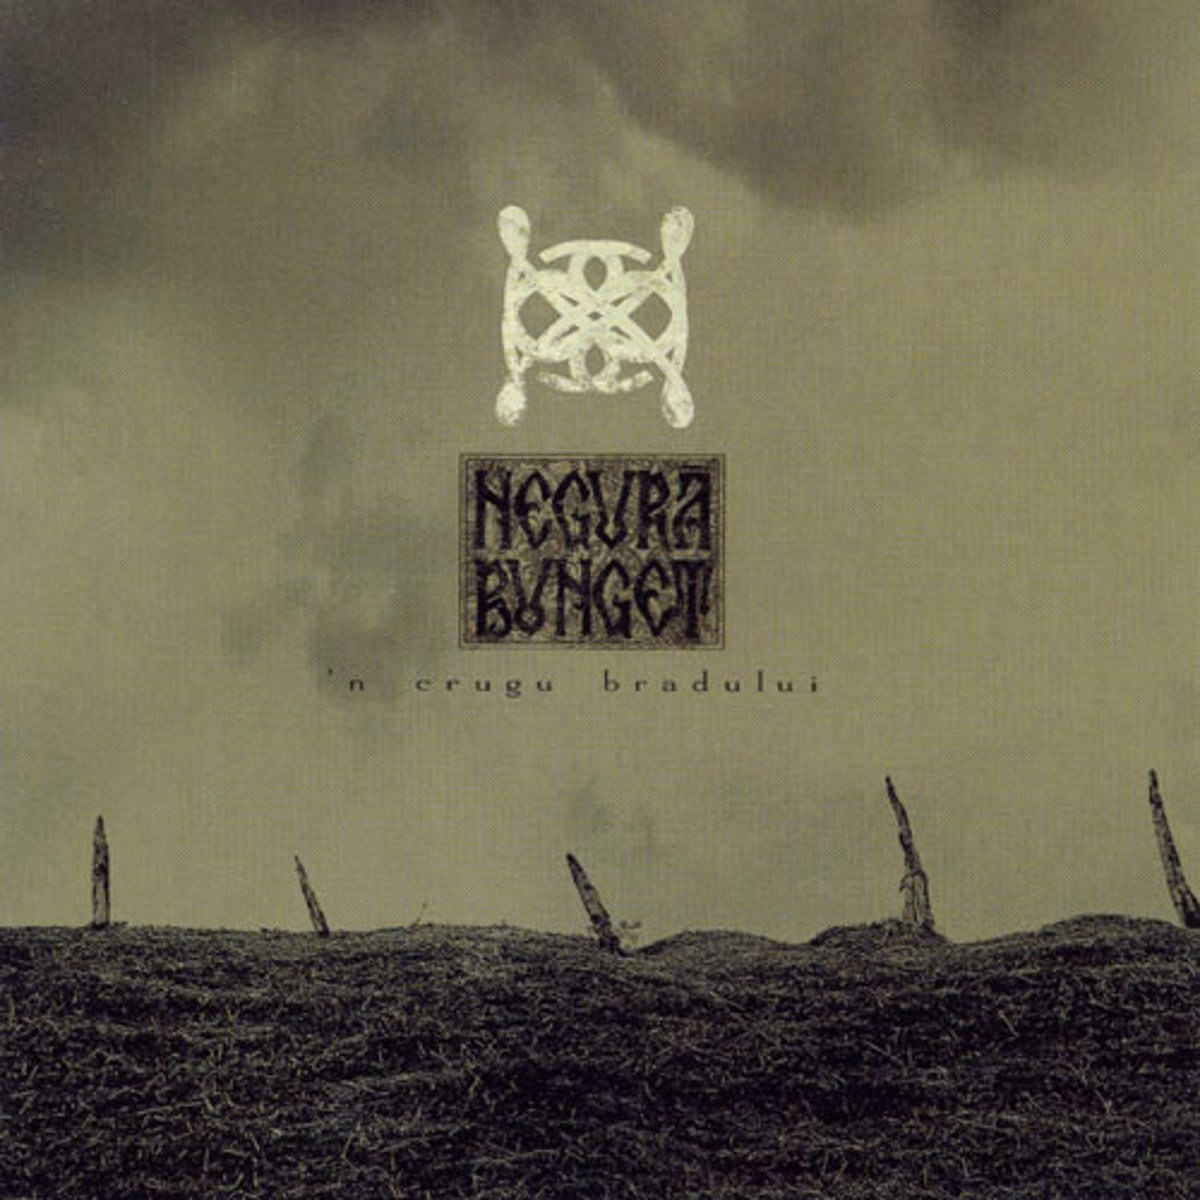 Review for Negură Bunget - 'N Crugu Bradului